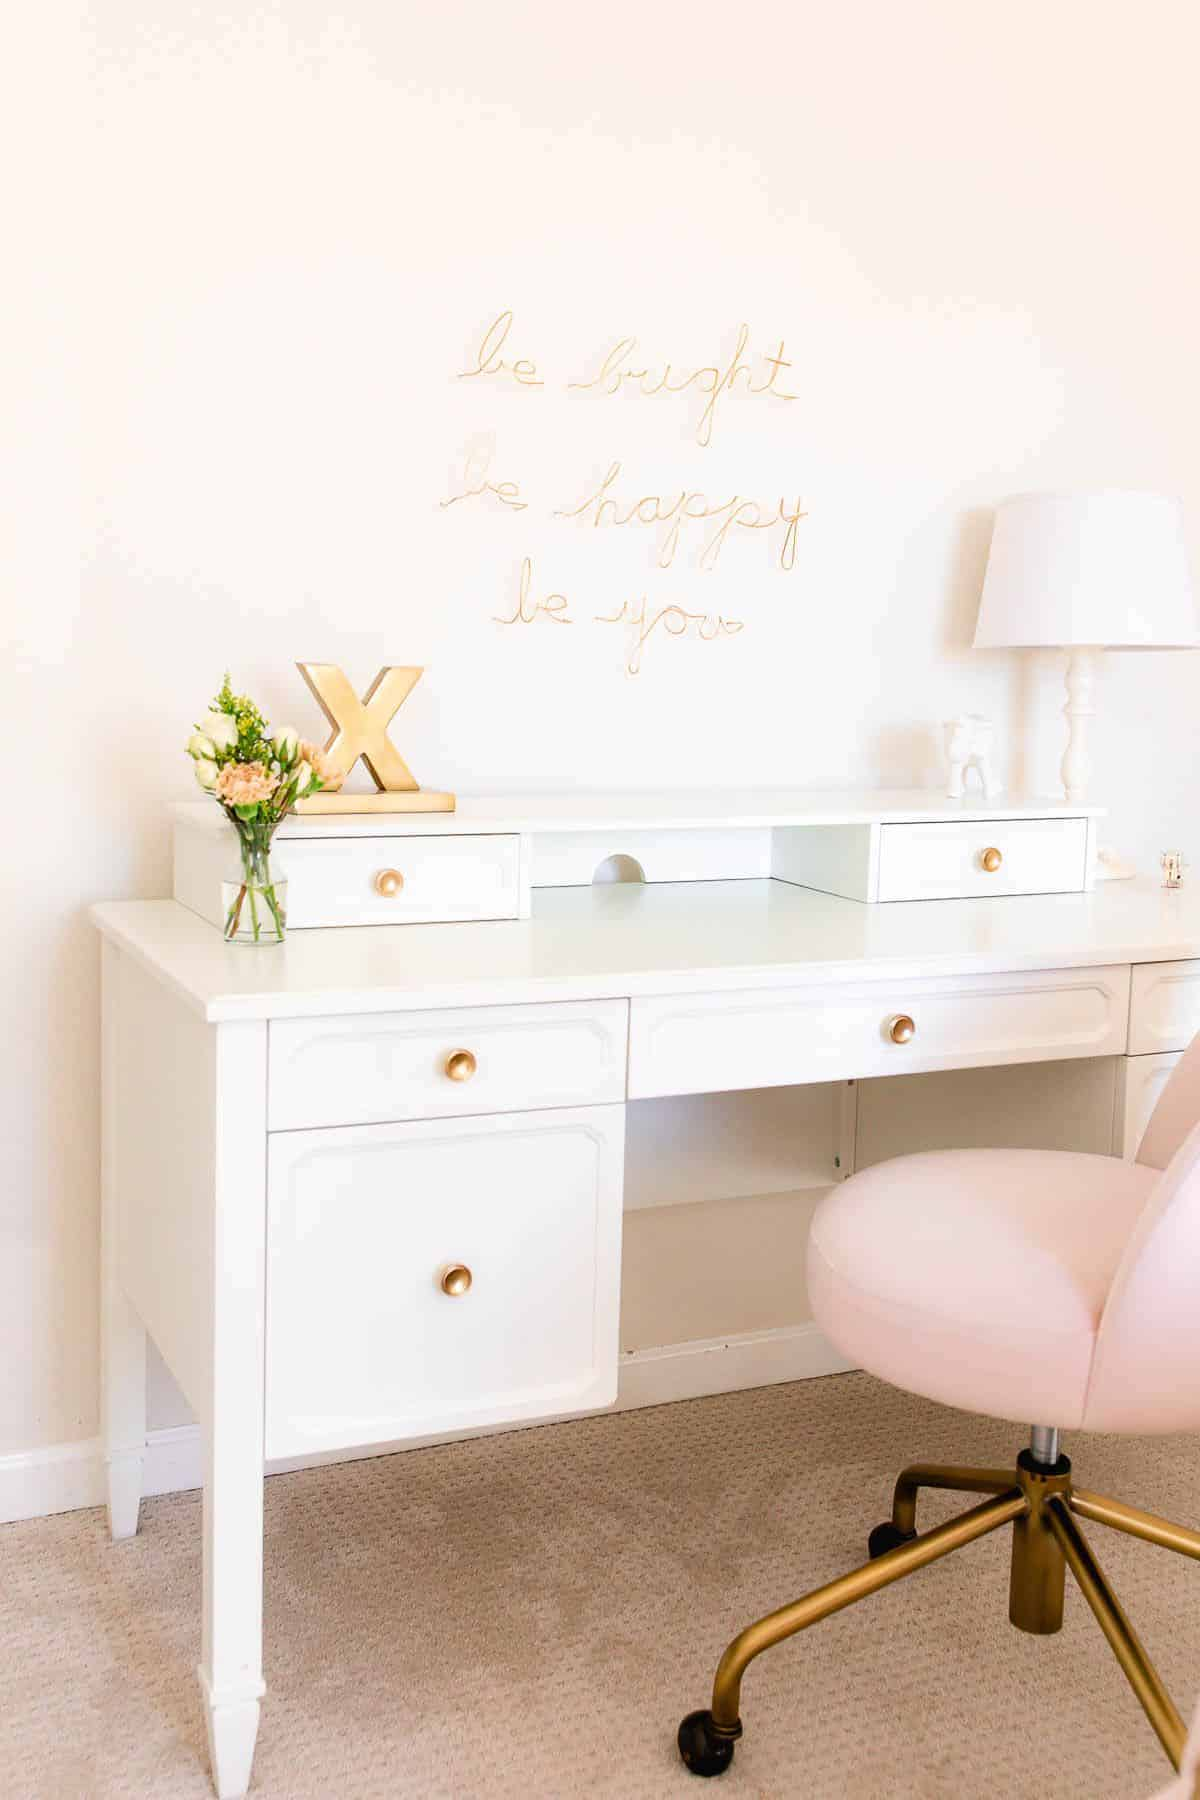 A white desk in a girl's bedroom with white walls and a pink chair.